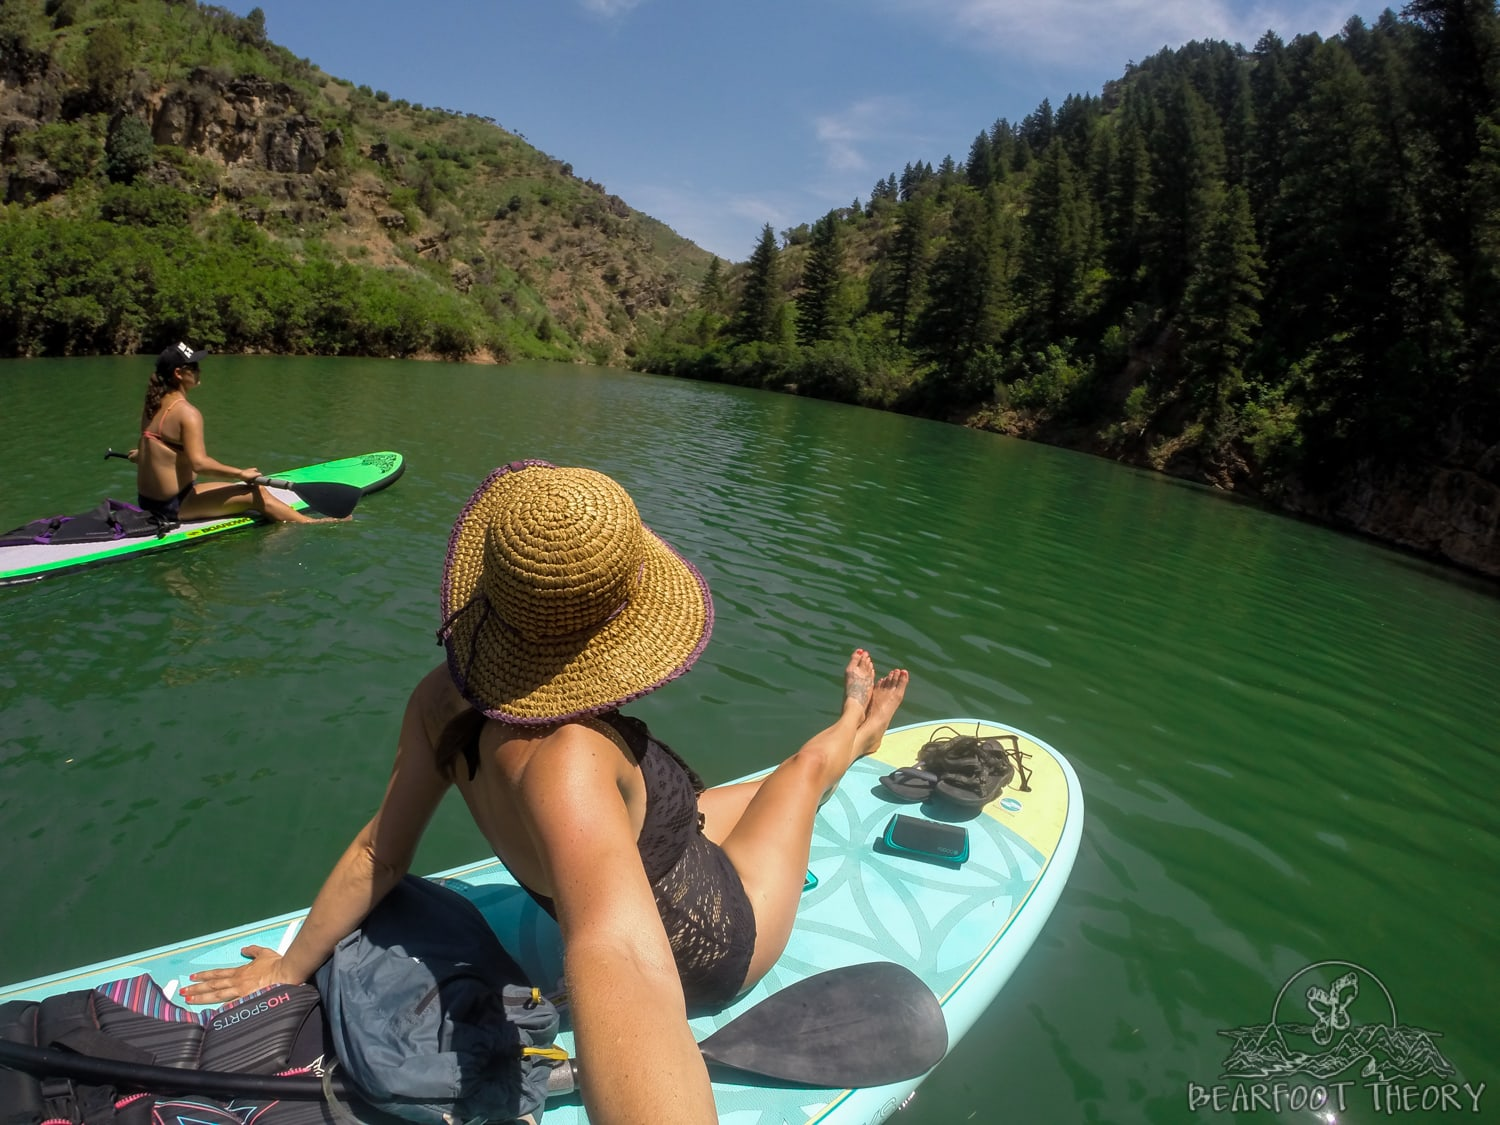 Stand-up Paddle Boarding at the Causey Reservoir near Salt Lake City